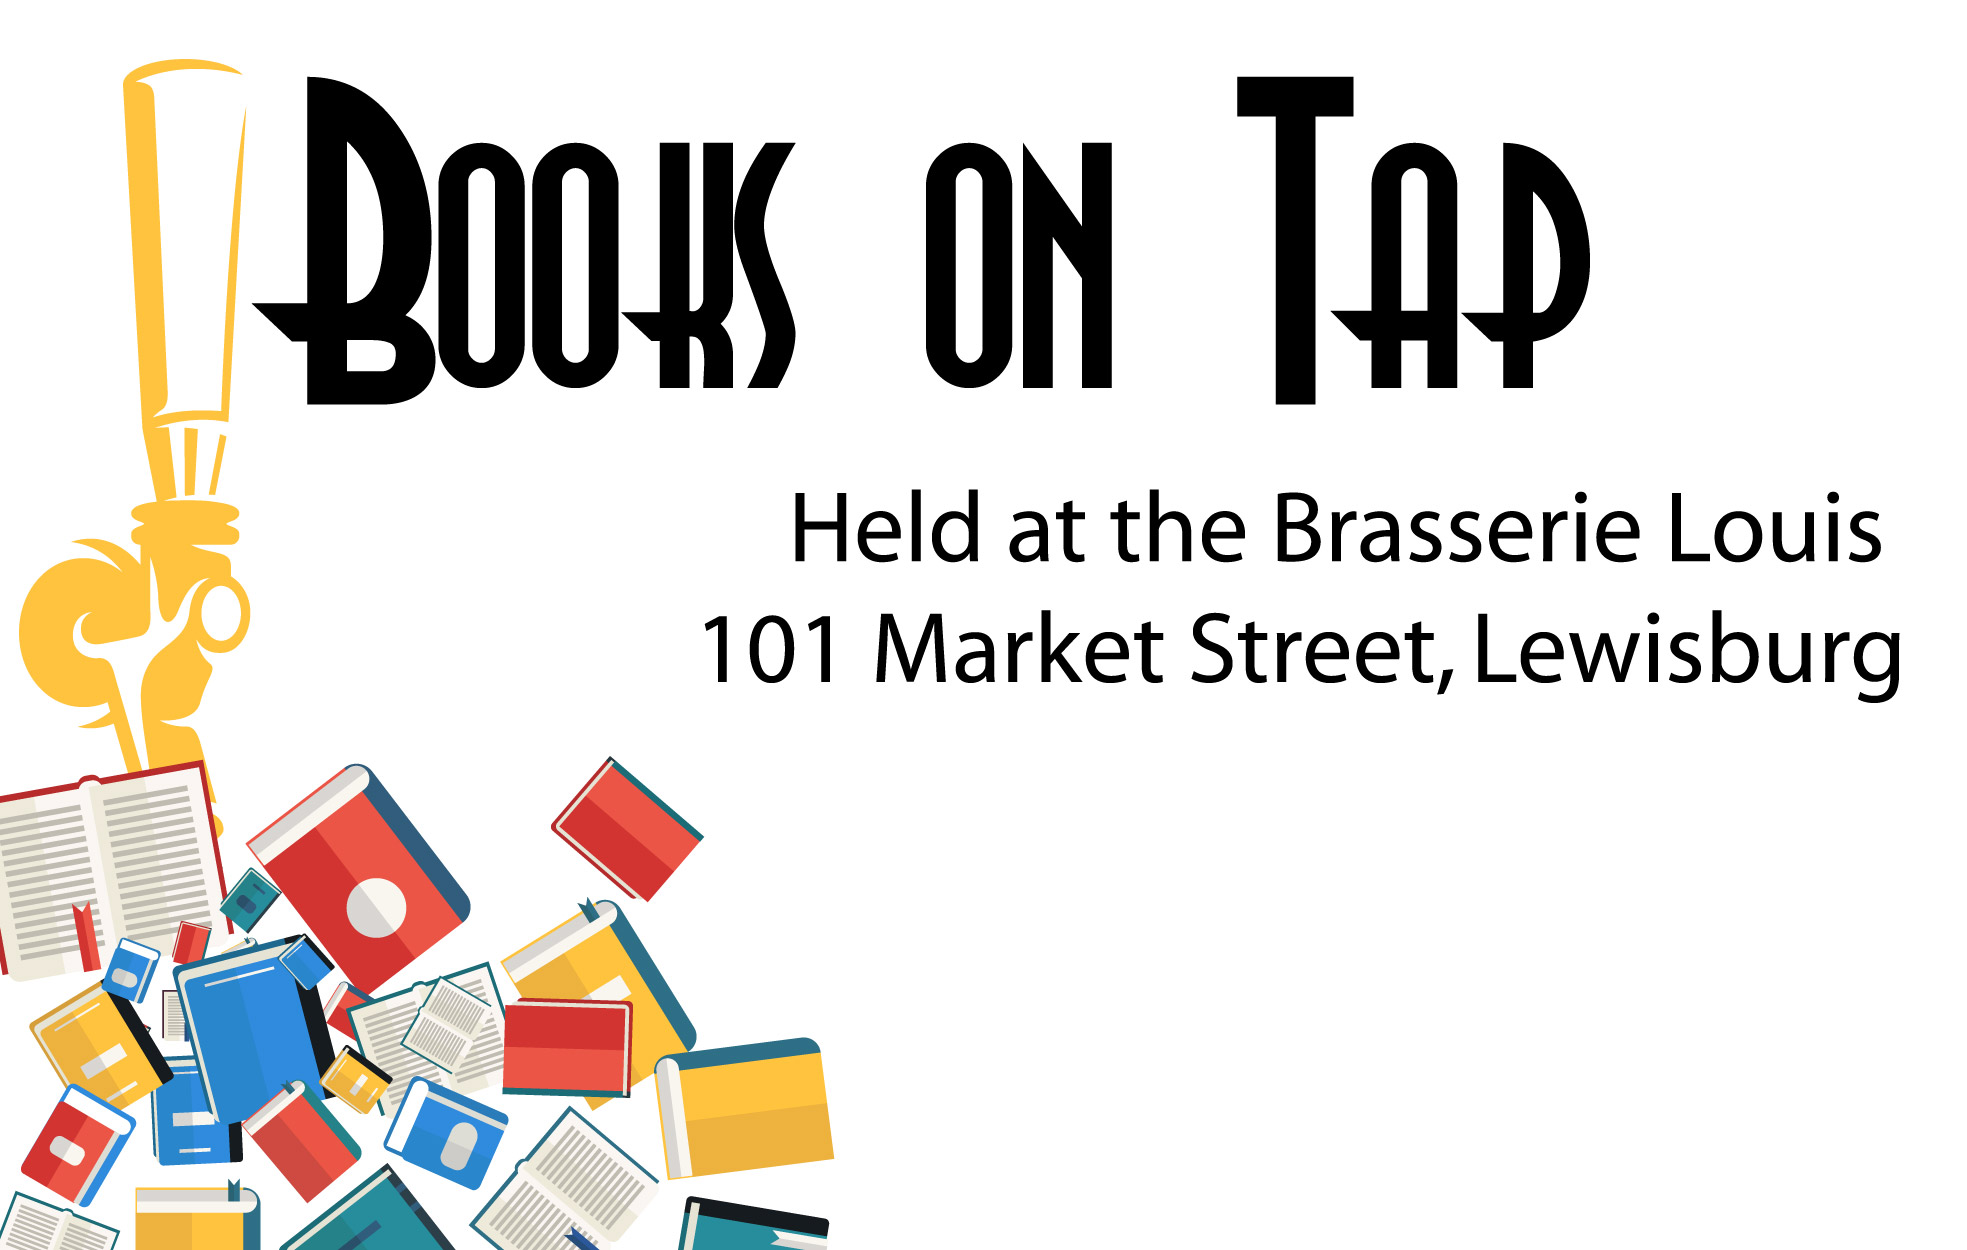 Books on Tap Held at the Brasserie Louis